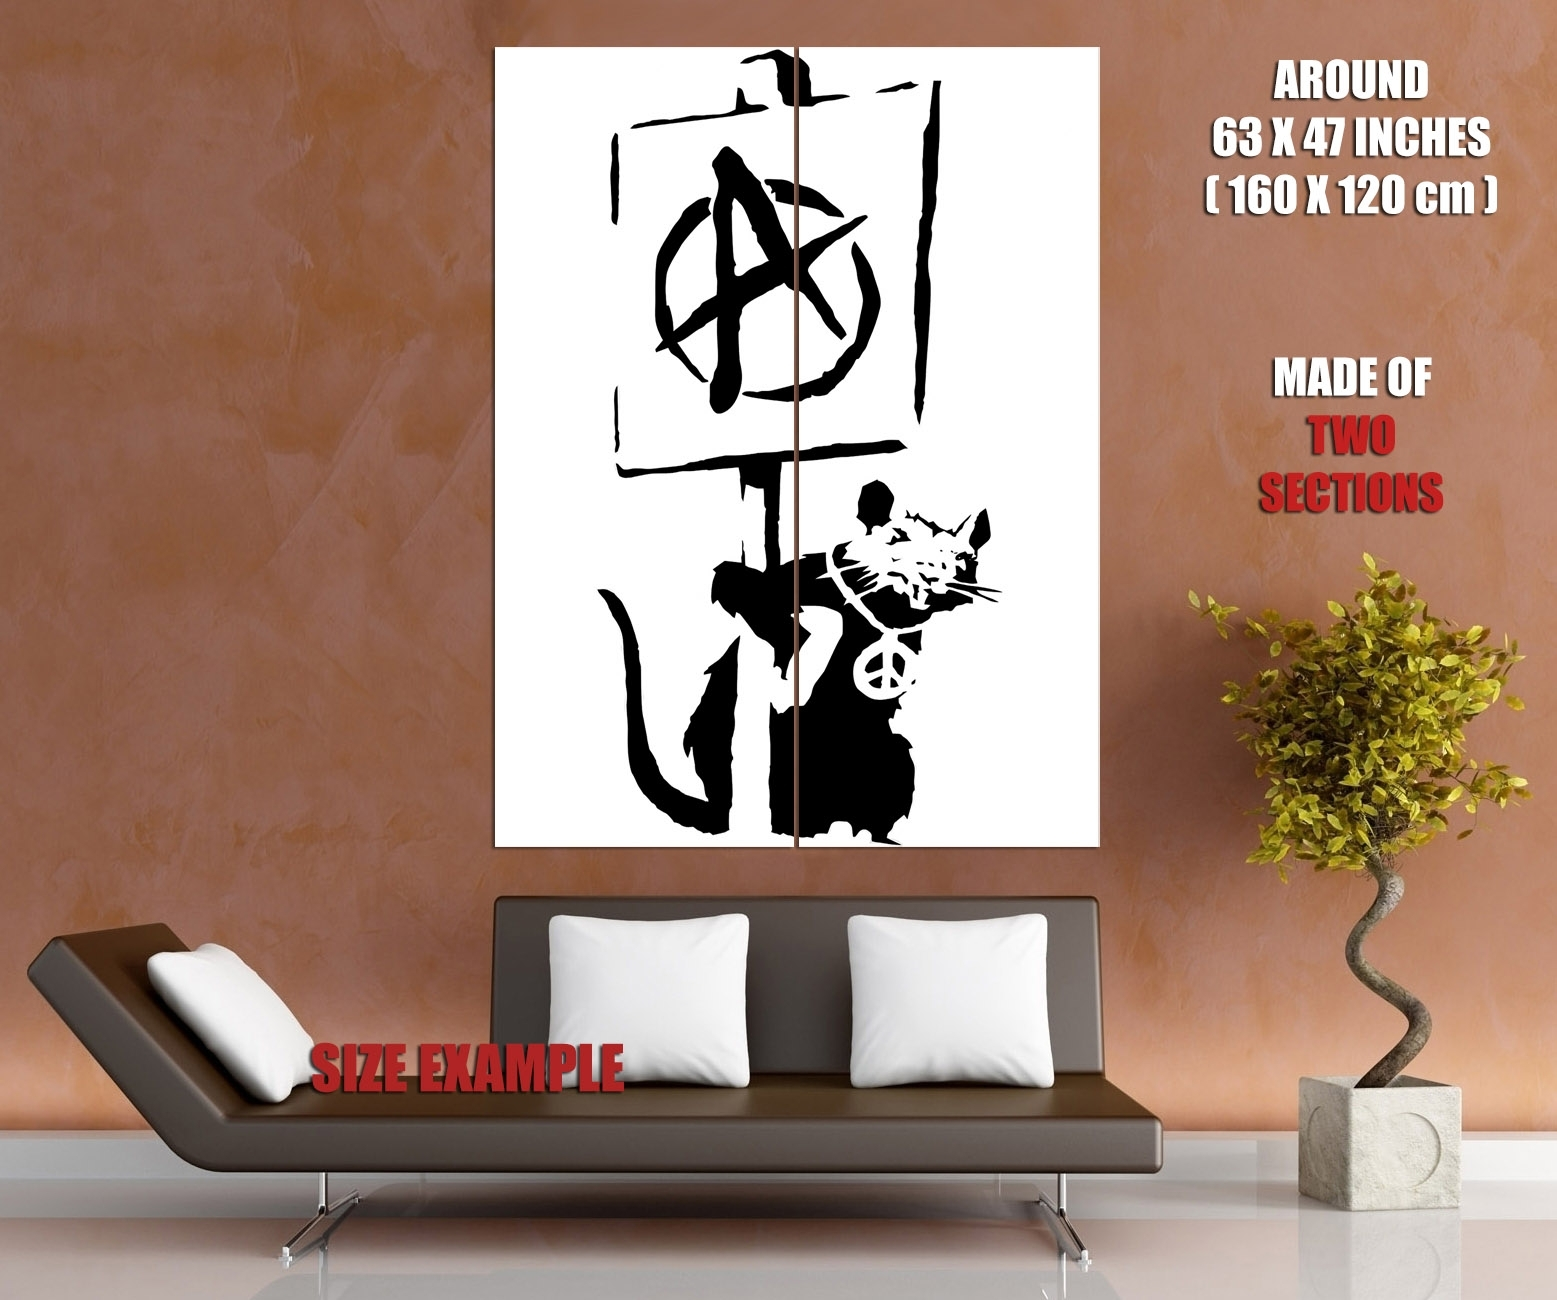 Banksy Rat Anarchy Pacifism Cool Graffiti Art Huge Giant Wall Print Pertaining To Most Recent Giant Wall Art (Gallery 16 of 20)